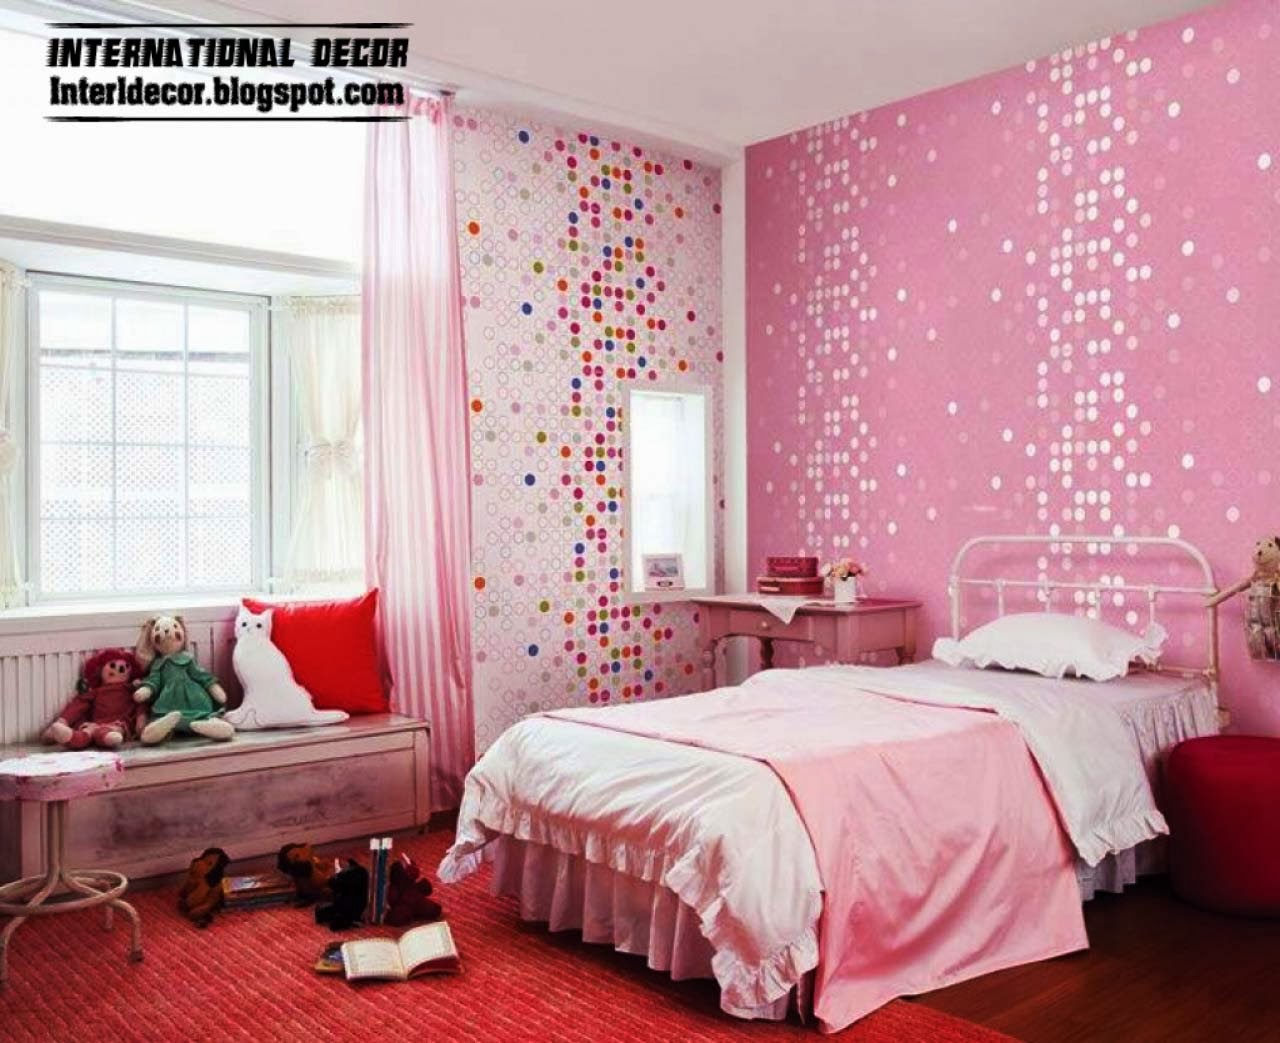 Pink Girls Bedroom   Inspire Pink Room Designs Ideas For - Girl bedroom decor ideas